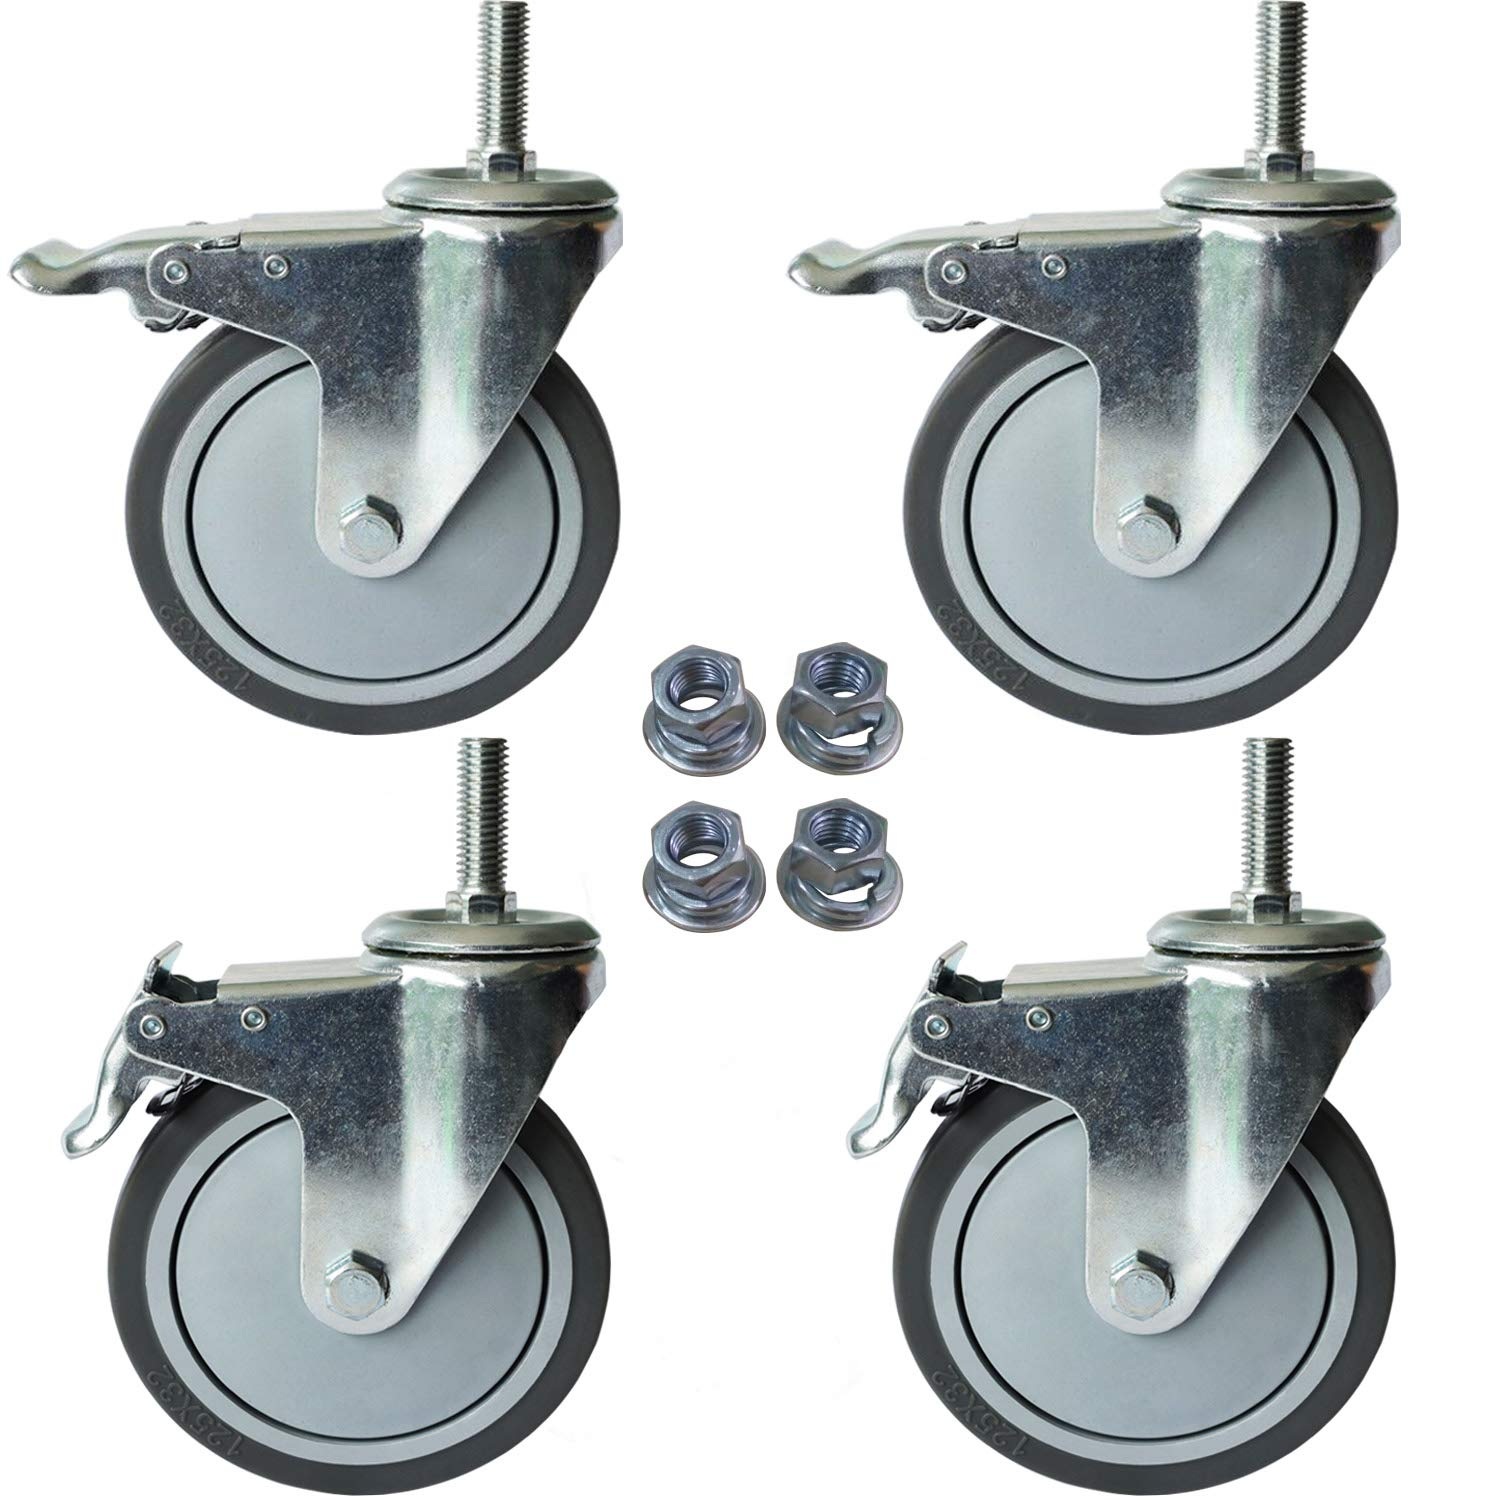 5 Inch Total Lock Caster - 1/2''-13 x 1.5'' Swivel Threaded Stem Casters Wheels with Brake - Grey TPR Rubber Wheel (Set of 4) by OuYi